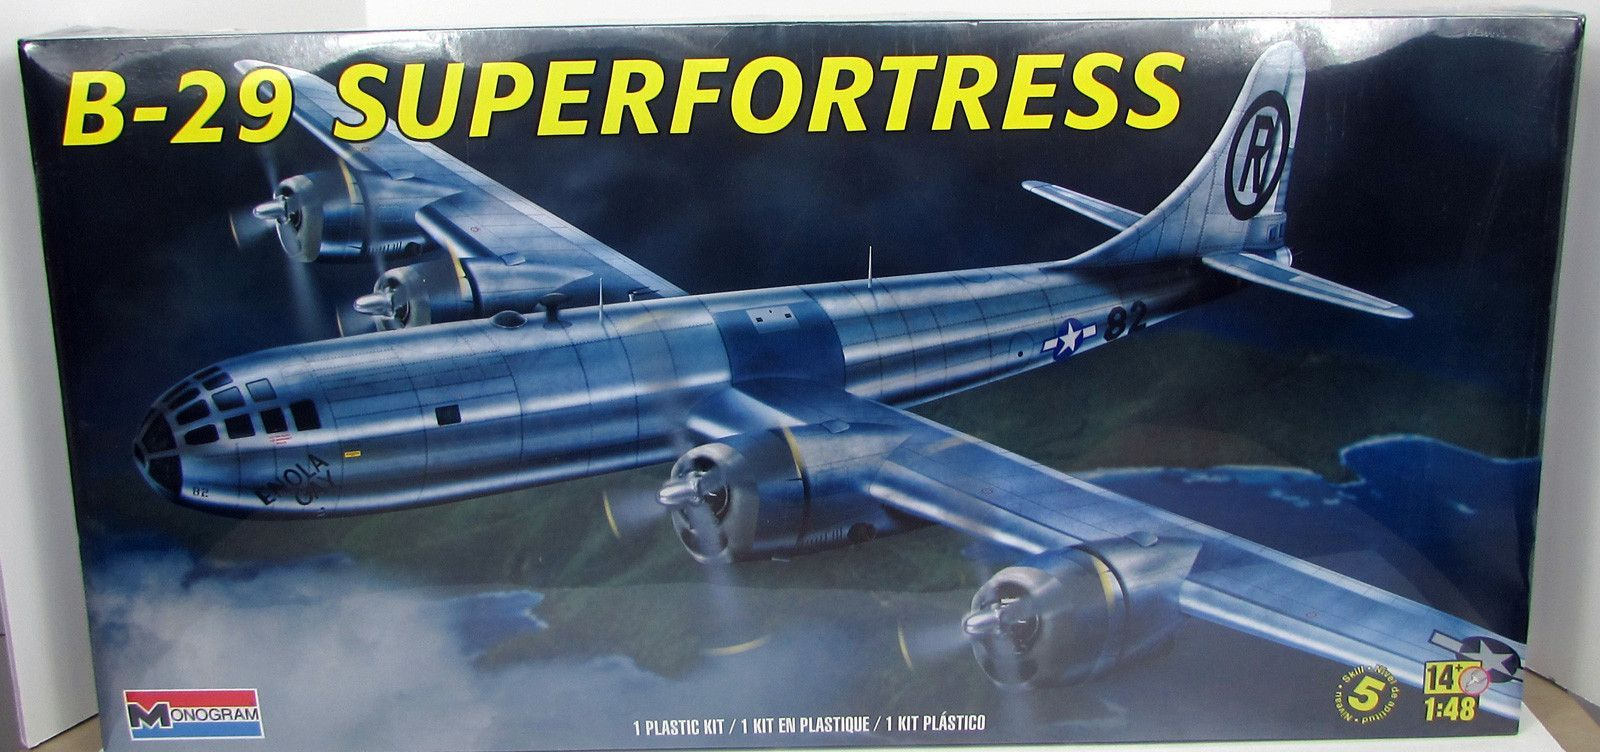 B-29 Superfortress Revell 85-5718 1/48 Scale New Model Airplane Kit